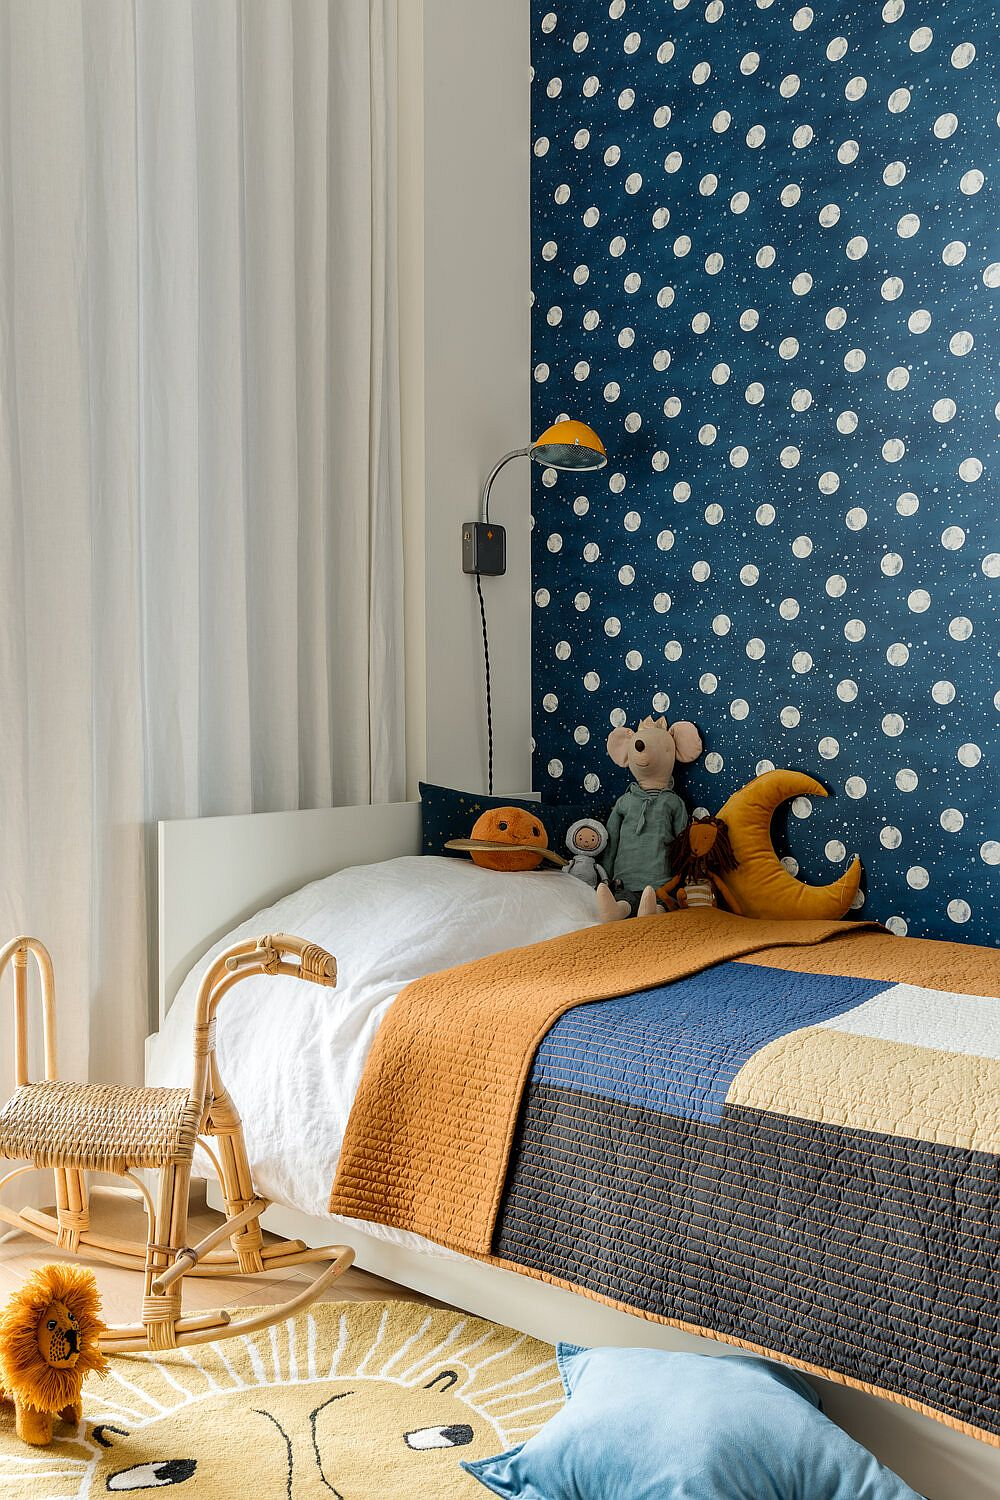 Modern kids' room with colorful backdrop in blue that features polka dot pattern